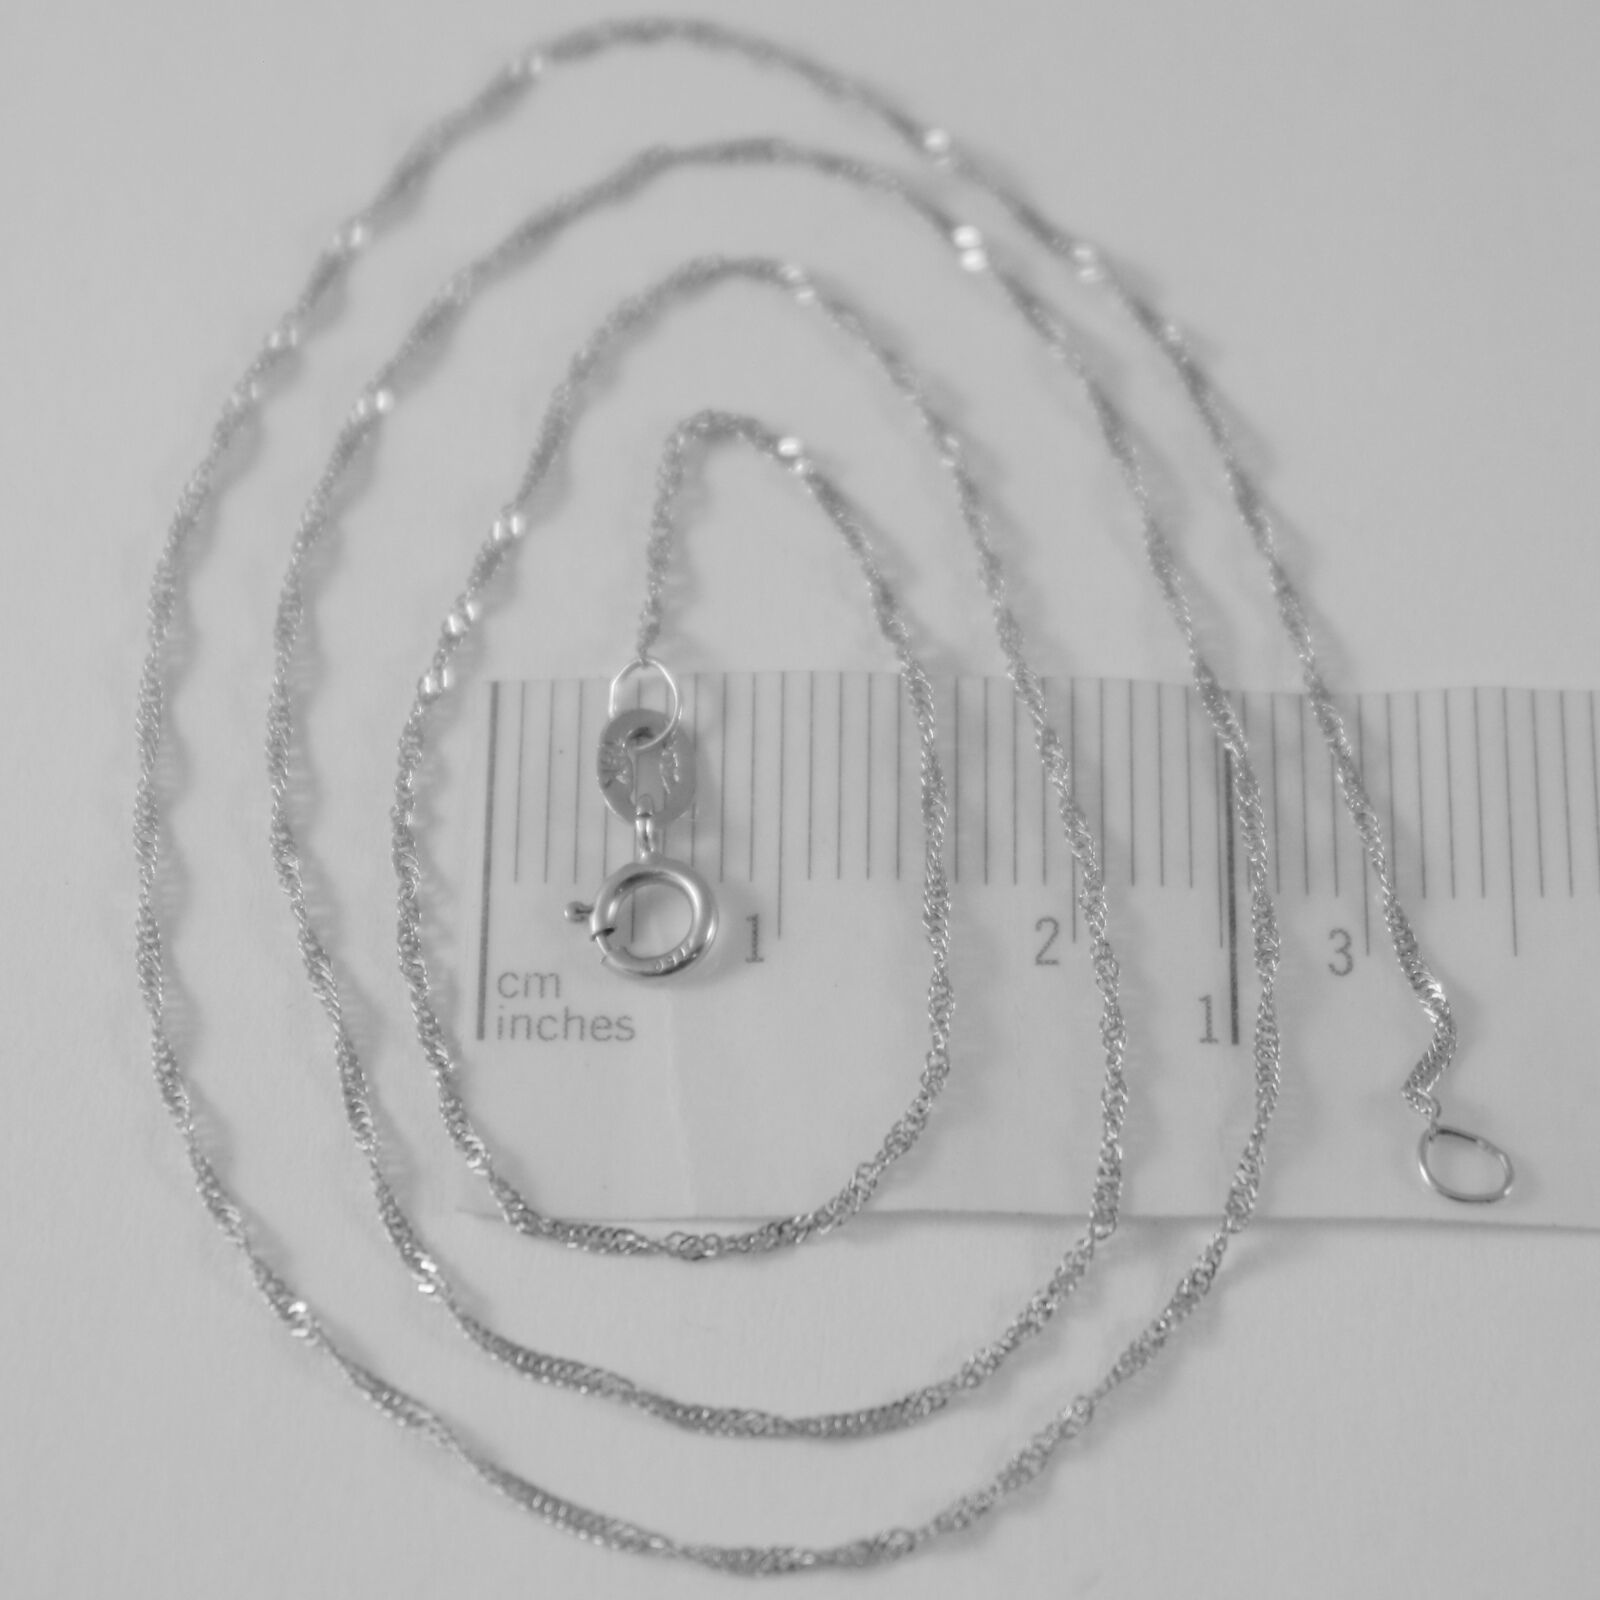 18K WHITE GOLD MINI SINGAPORE BRAID ROPE CHAIN 16 INCHES, 1 MM, MADE IN ITALY